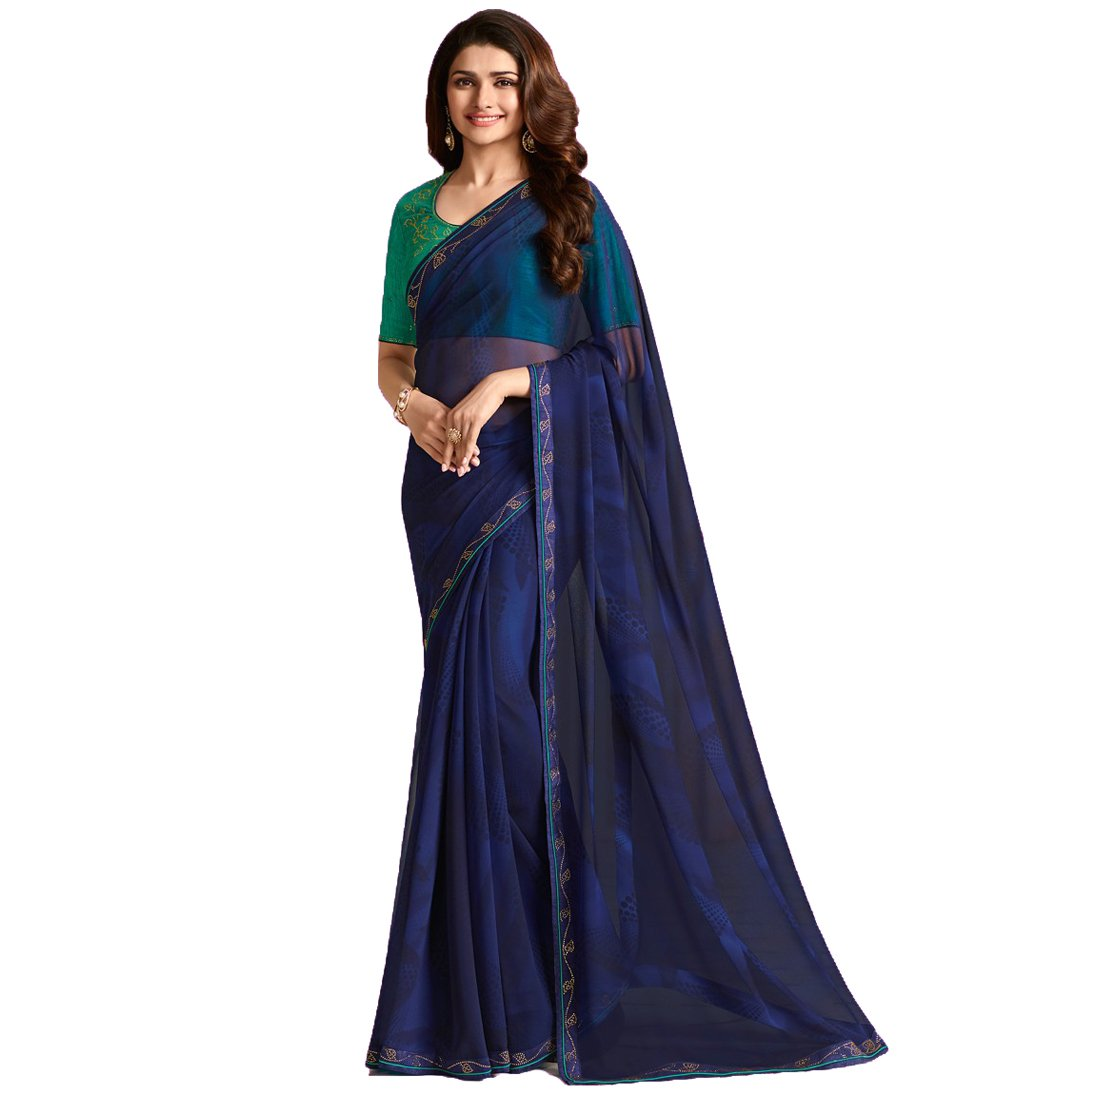 Nevy bluee Dilse Fashion Designer Partywear Saree for Women's with Unstitched Blouse